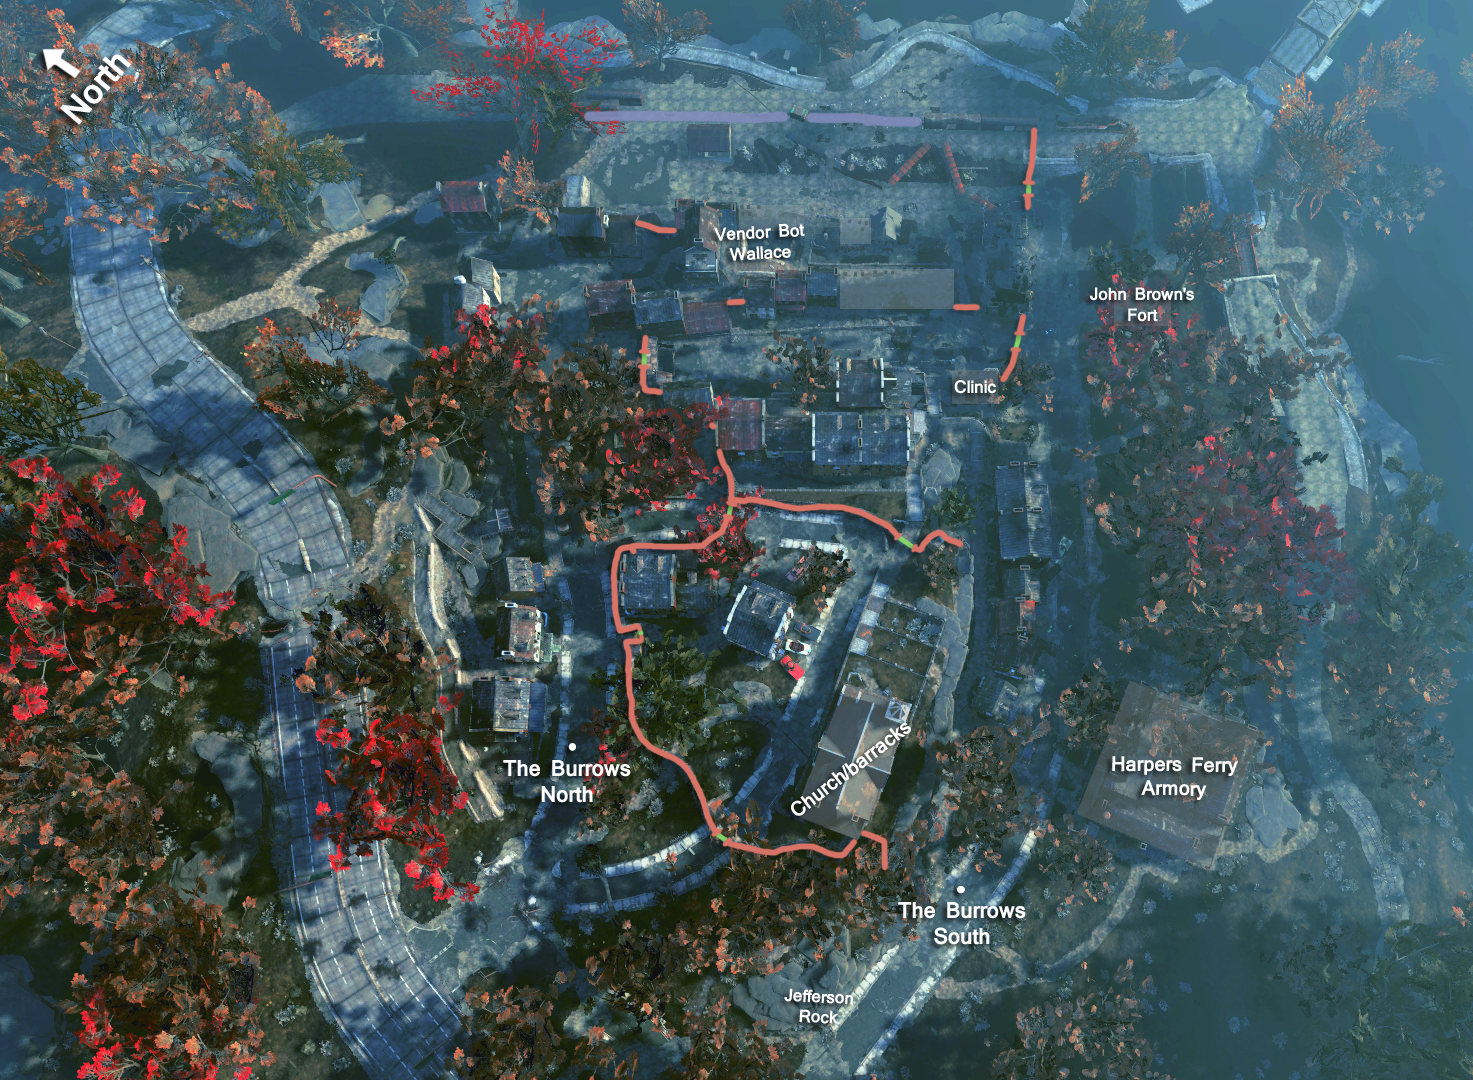 FO76 Harpers Ferry map labeled